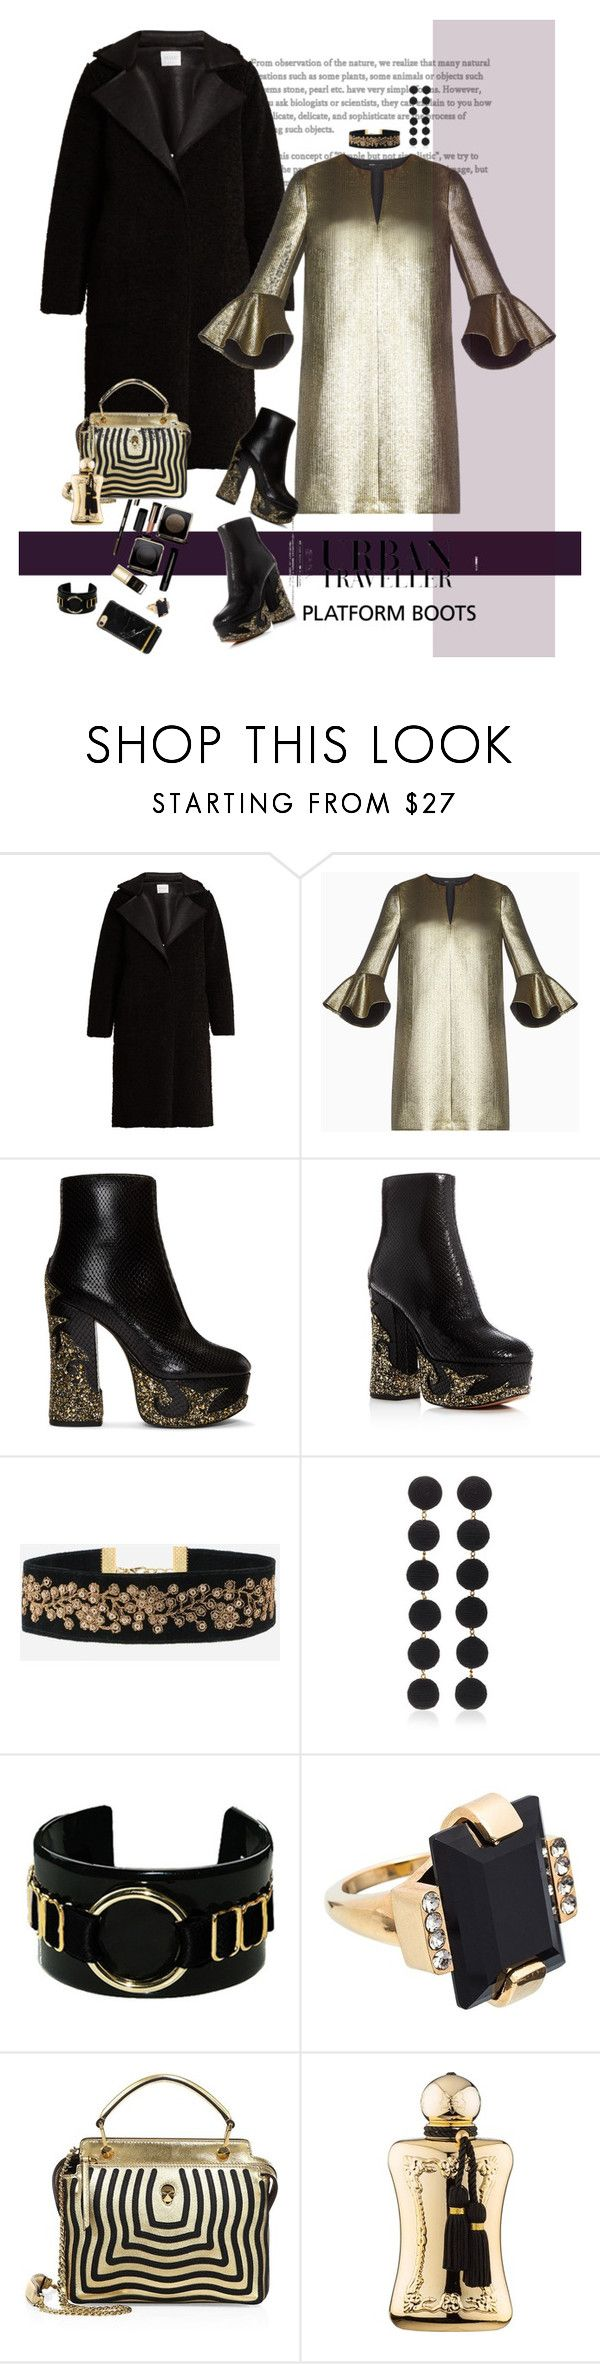 """""""platform boots"""" by justirena ❤ liked on Polyvore featuring Velvet by Graham & Spencer, BCBGMAXAZRIA, Marc Jacobs, Bibi Marini, Bordelle, Marni, Fendi and Parfums de Marly"""